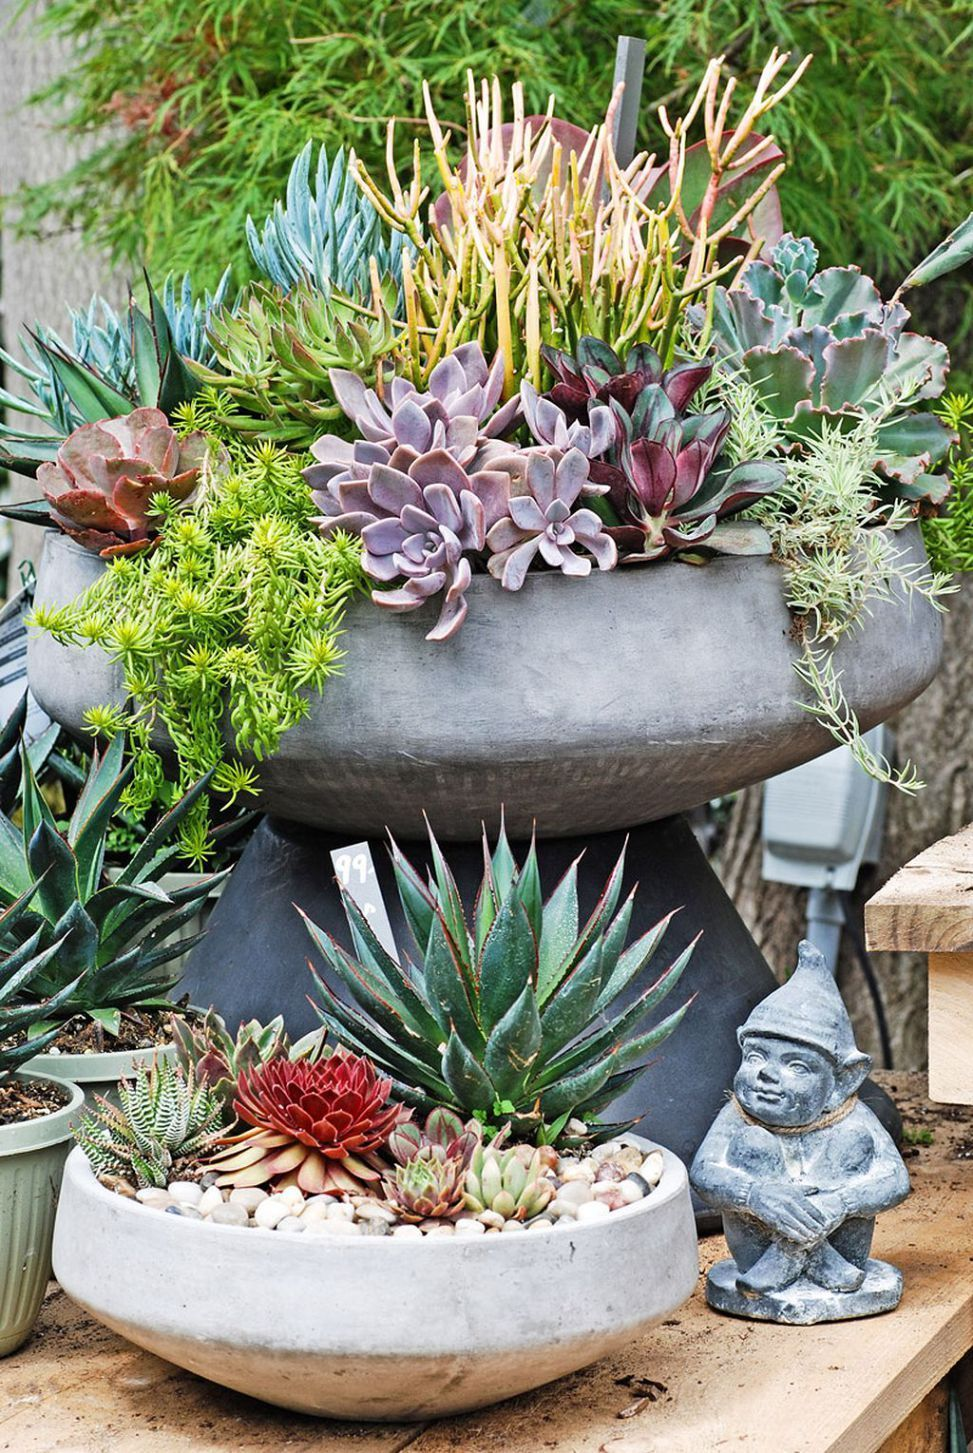 Start A Succulent Container Garden Potted Succulents Are Perfect Summer Plants For Midwest Porch Patio Or Deck Thanks To Their Small Size Water Saving